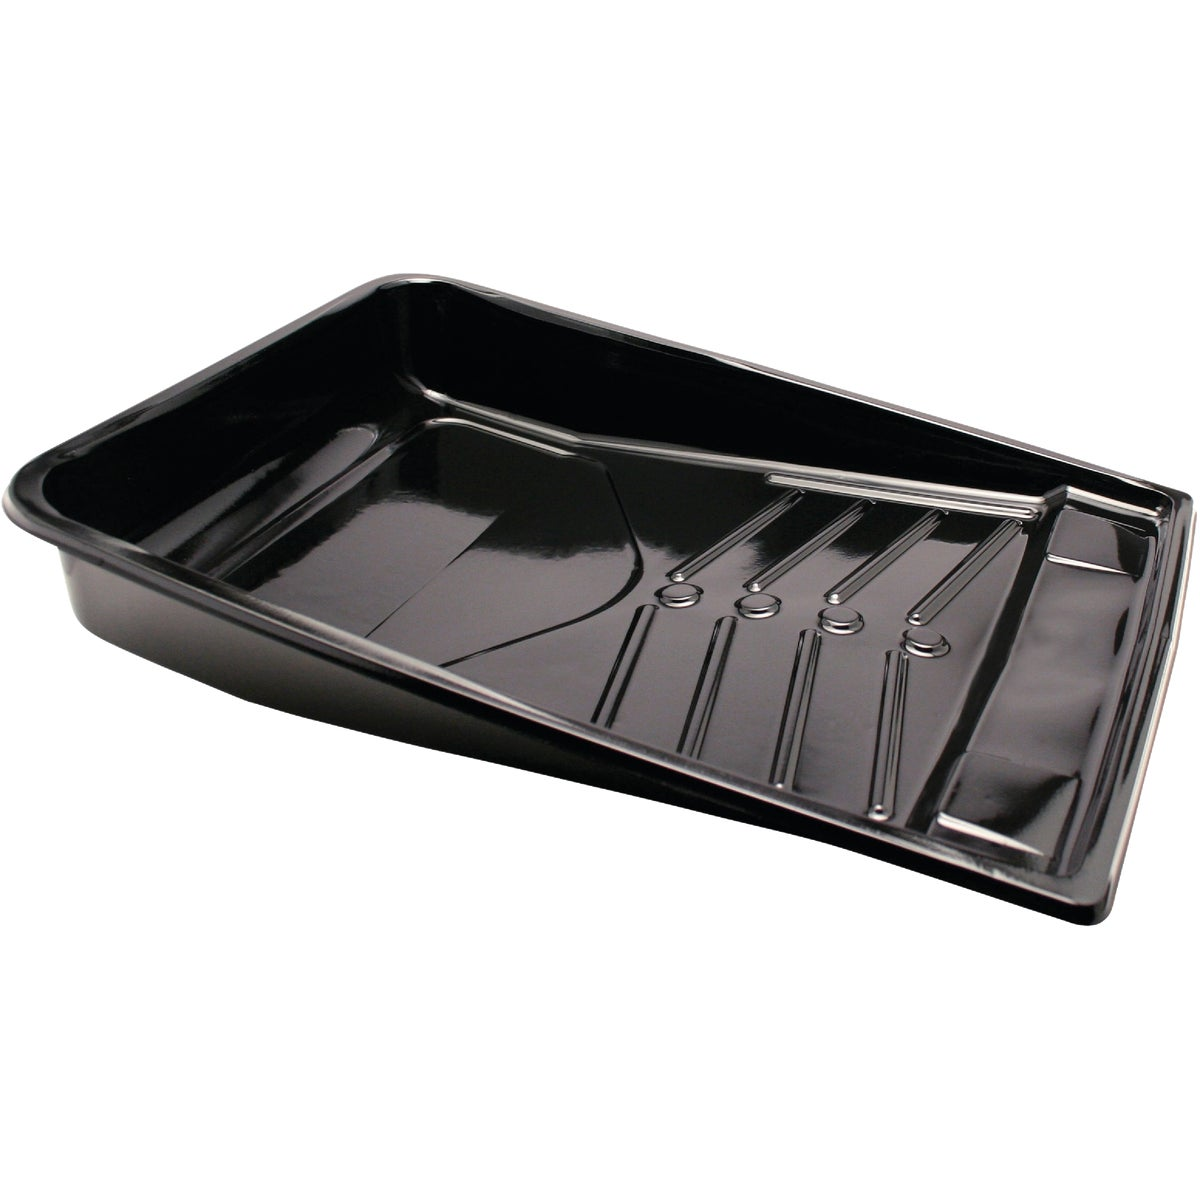 PLASTIC PAINT TRAY LINER - 39 by Leaktite Corporation